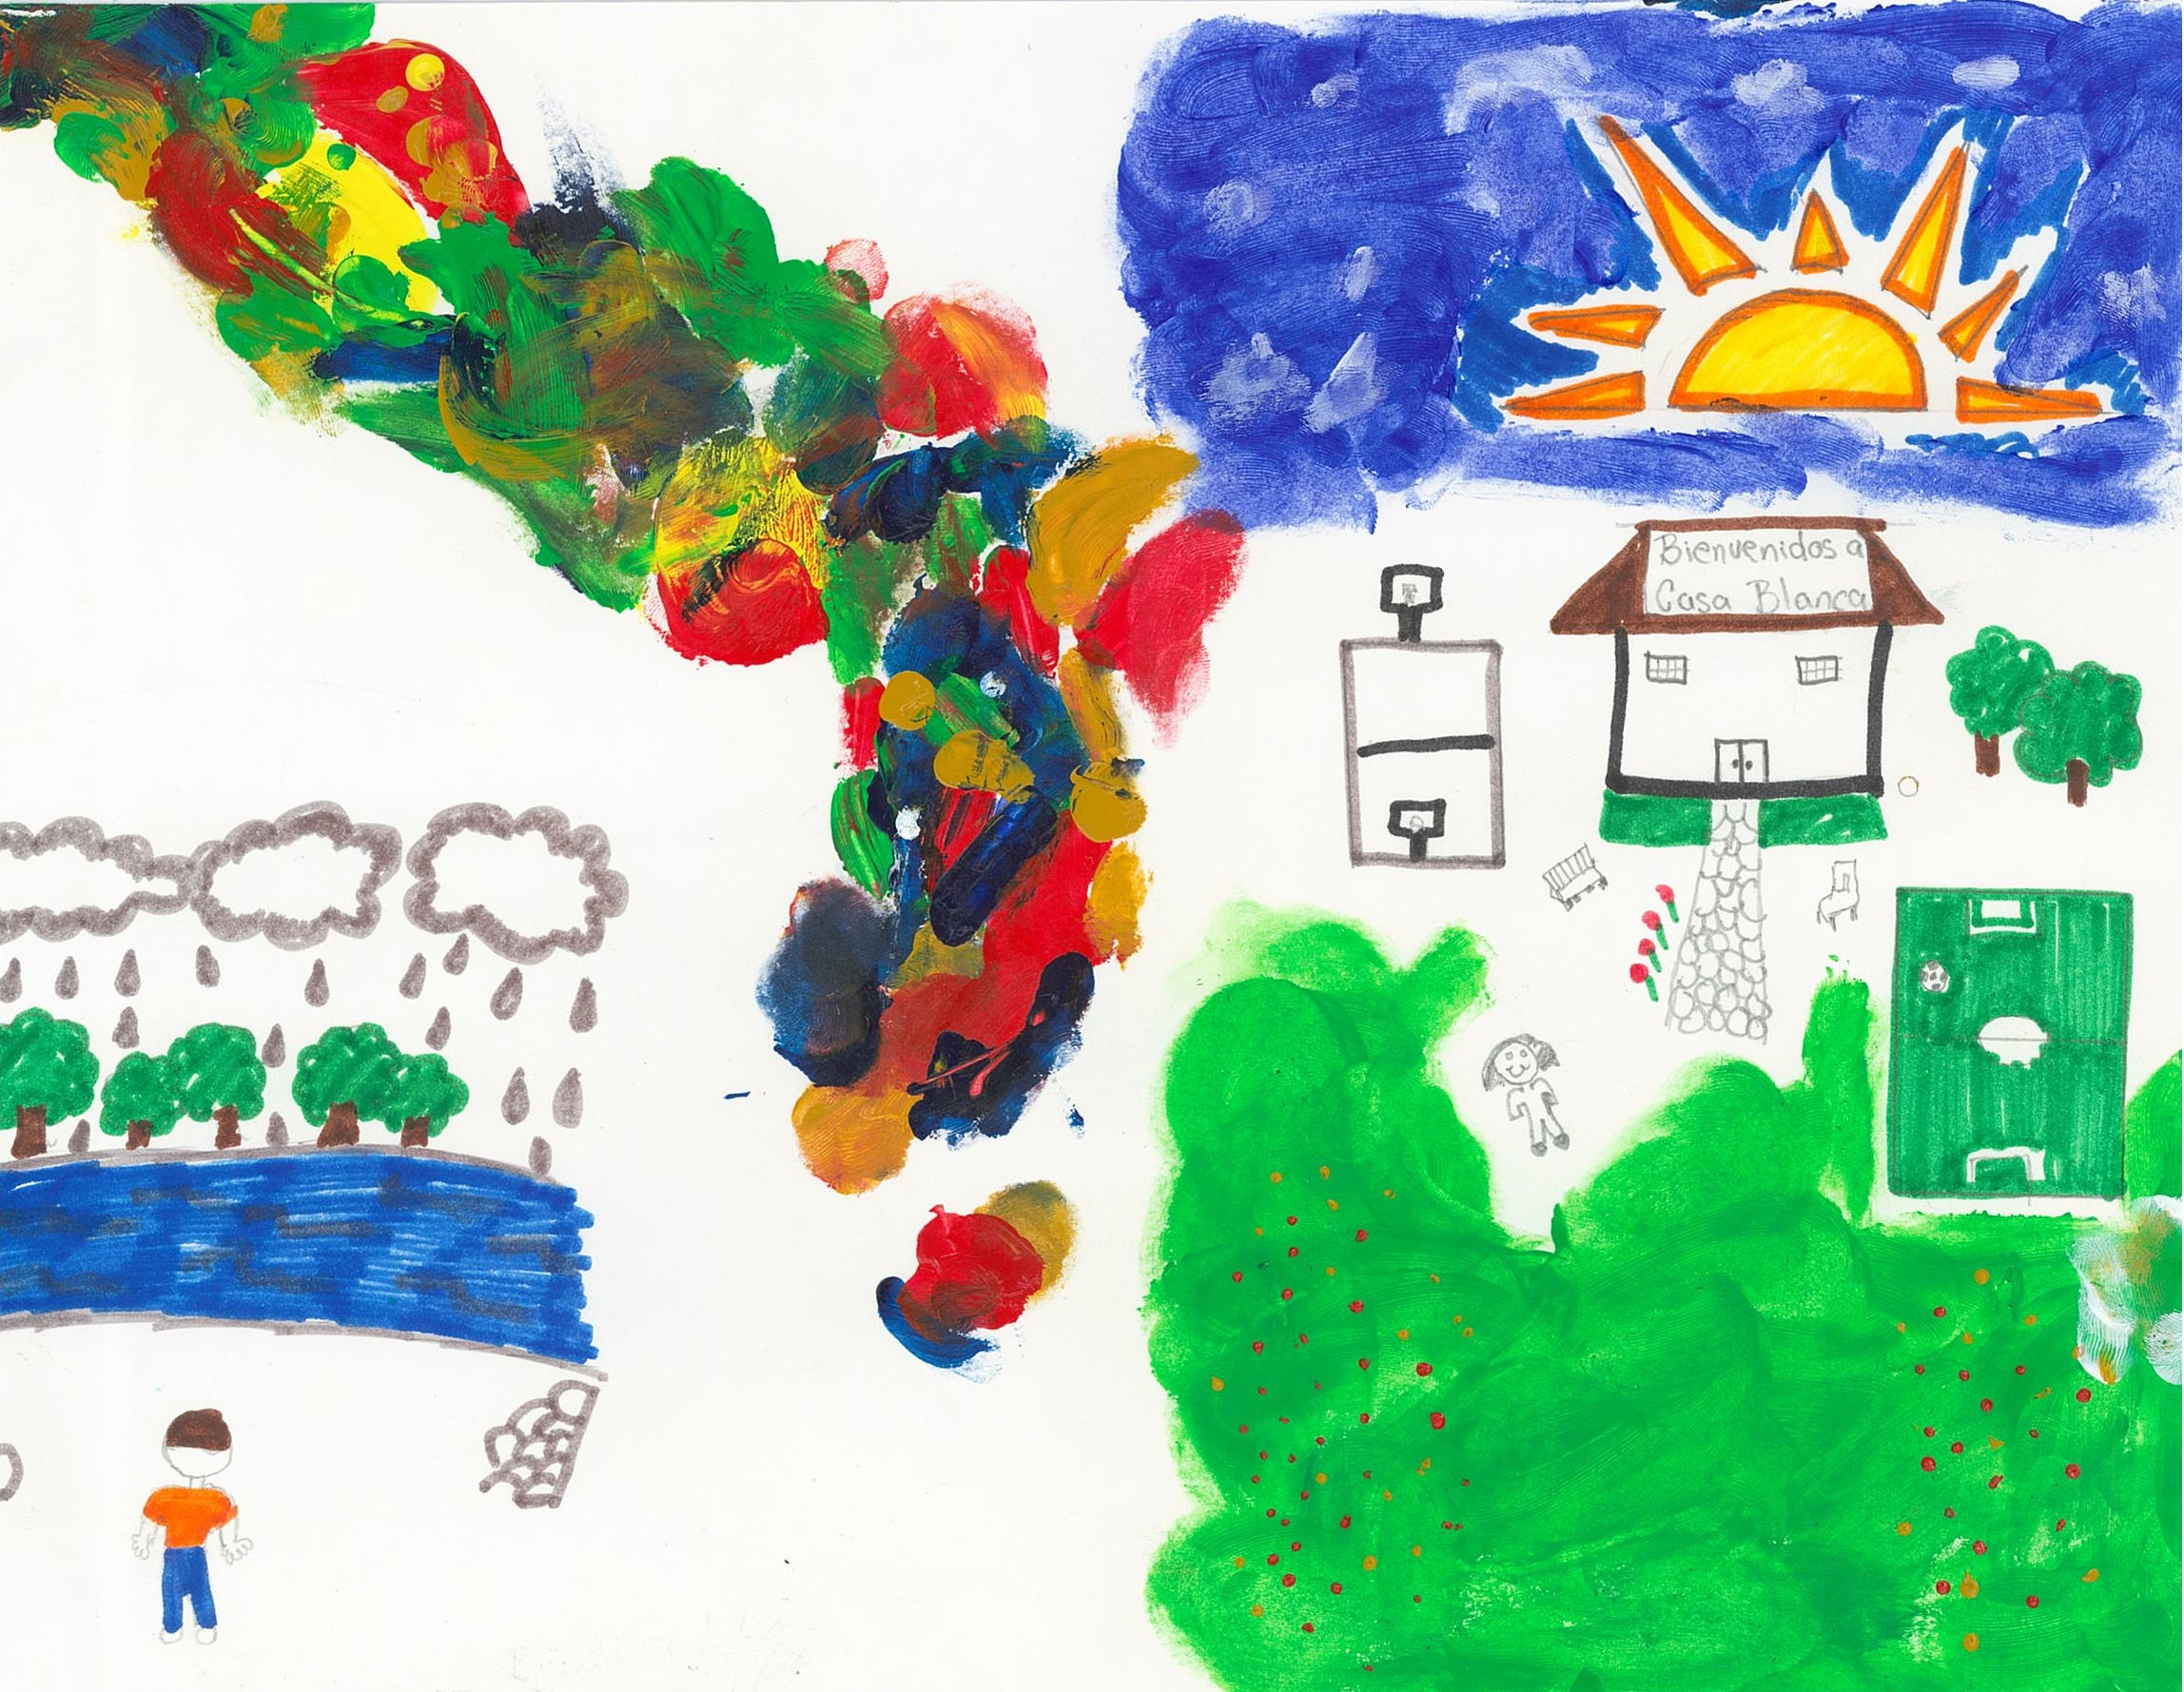 Immigrant Youth's Artwork